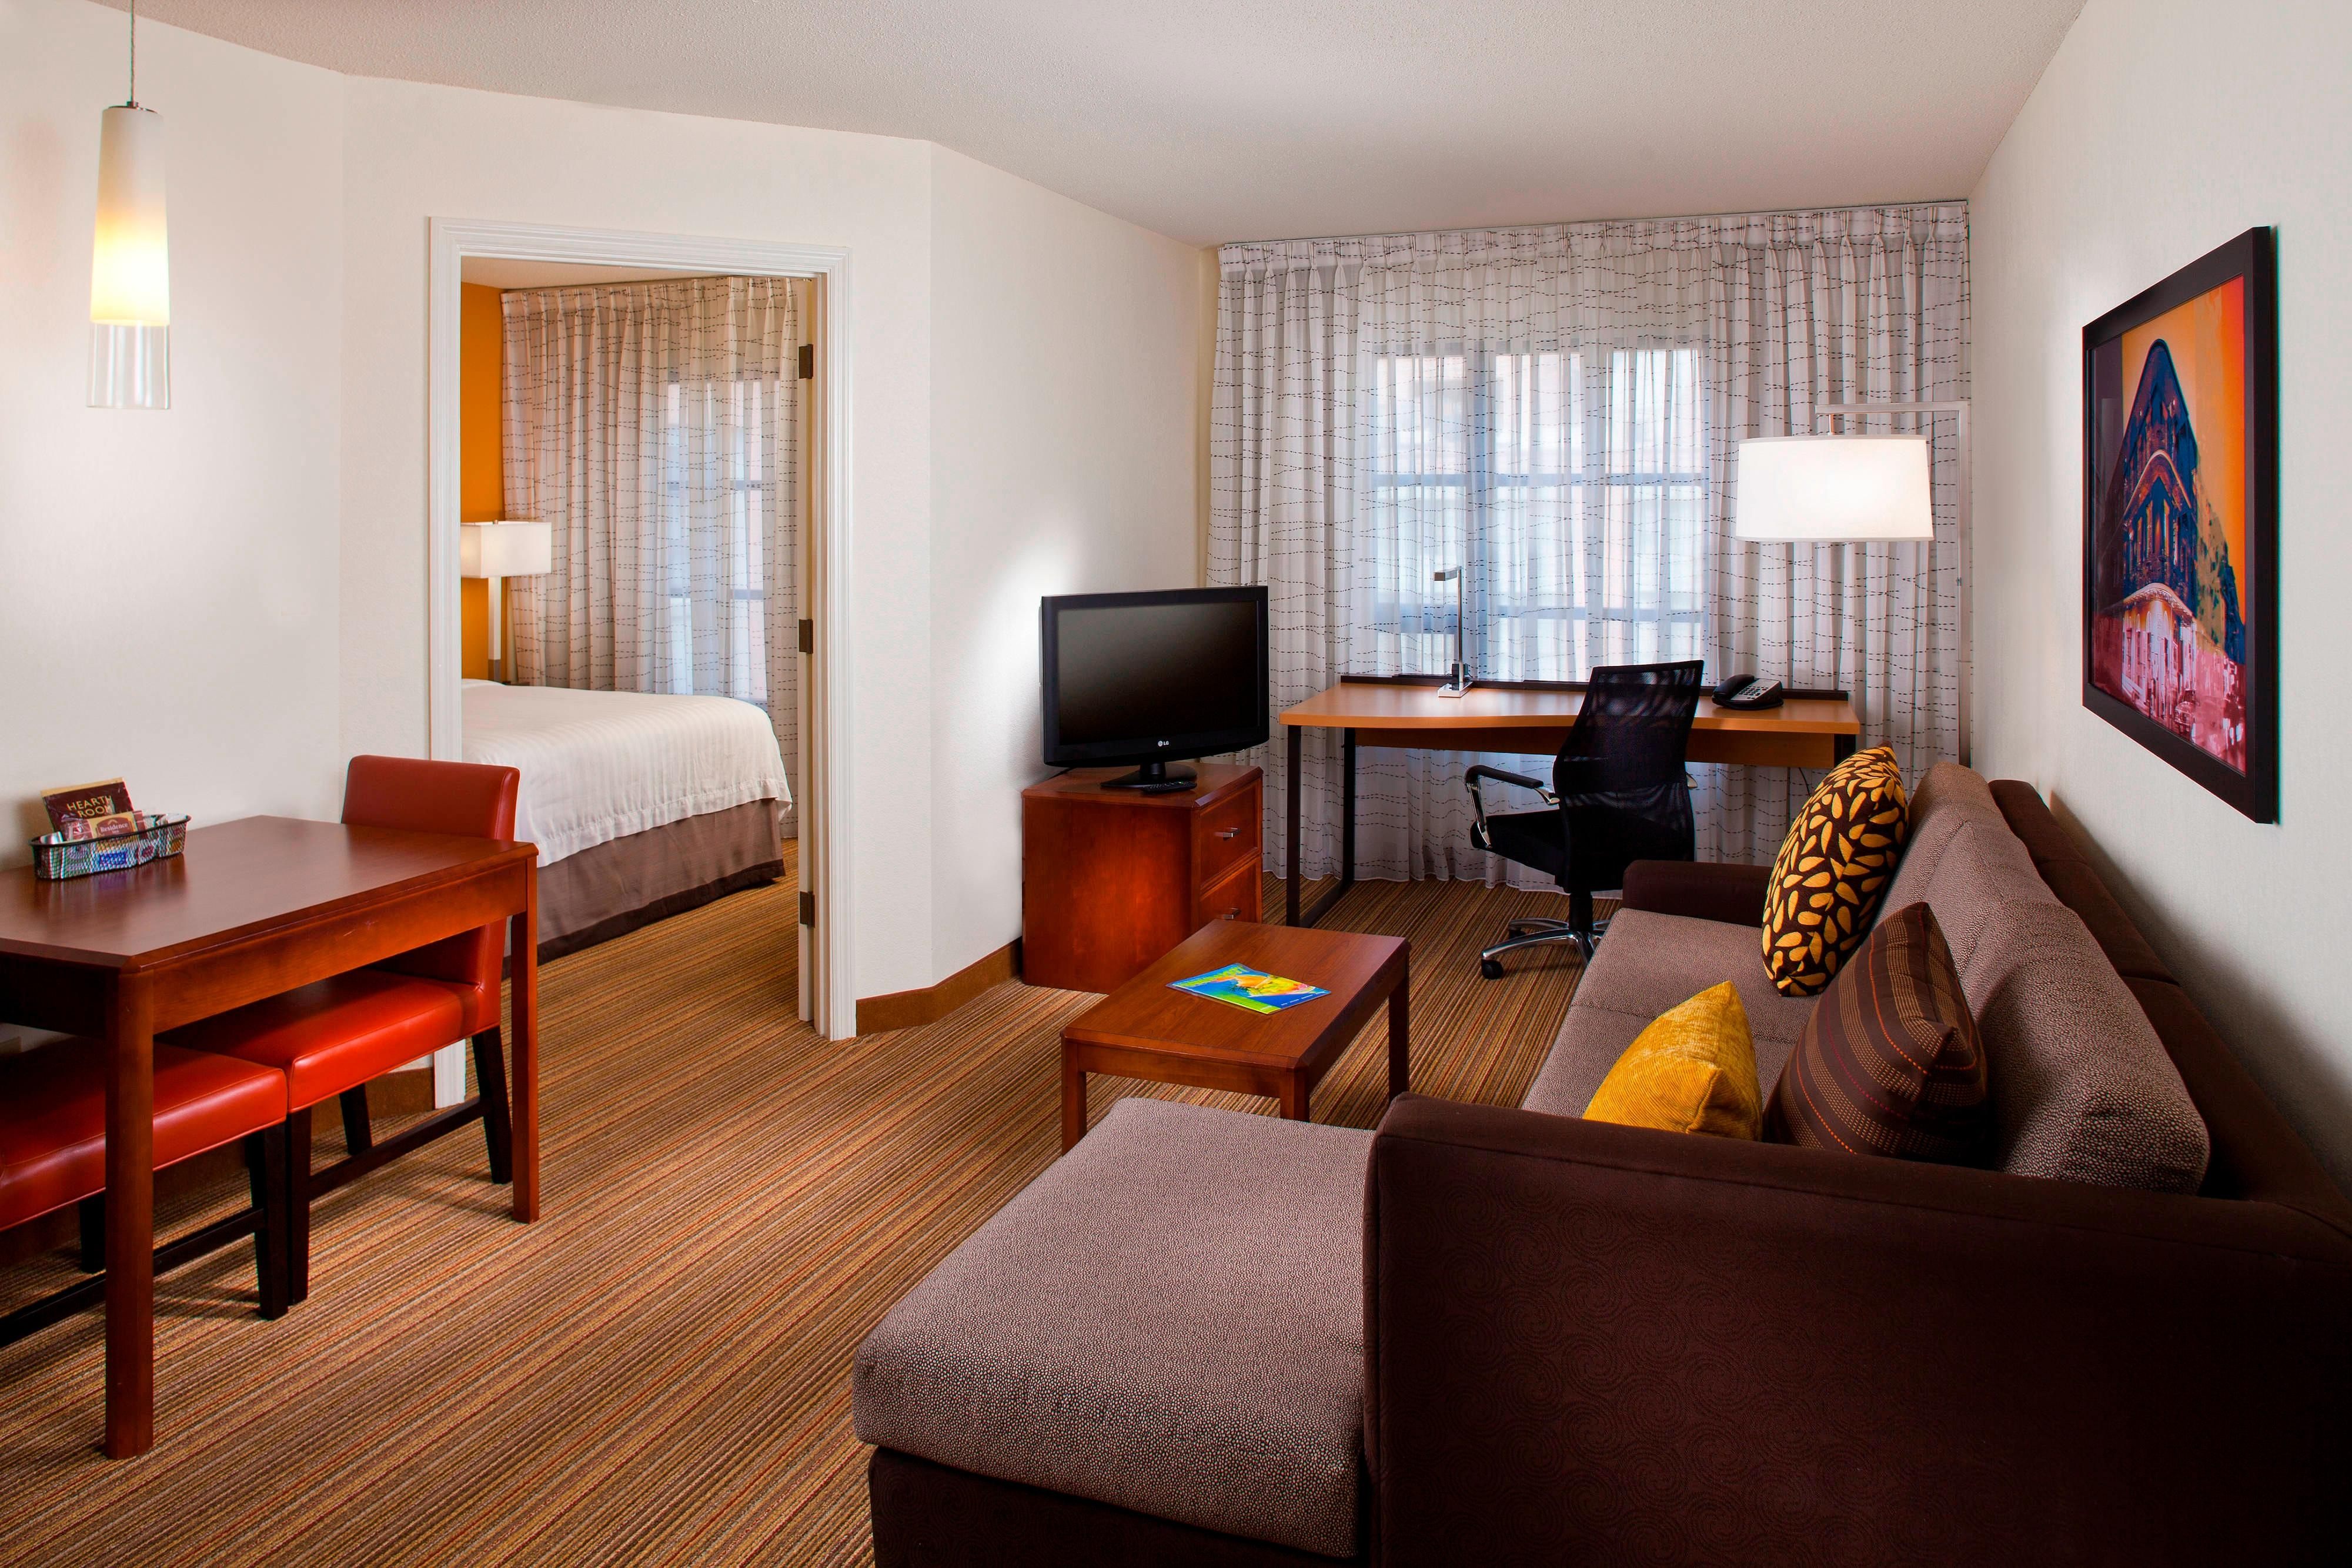 Two Bedroom Suites In New Orleans Downtown New Orleans Hotels Residence Inn New Orleans